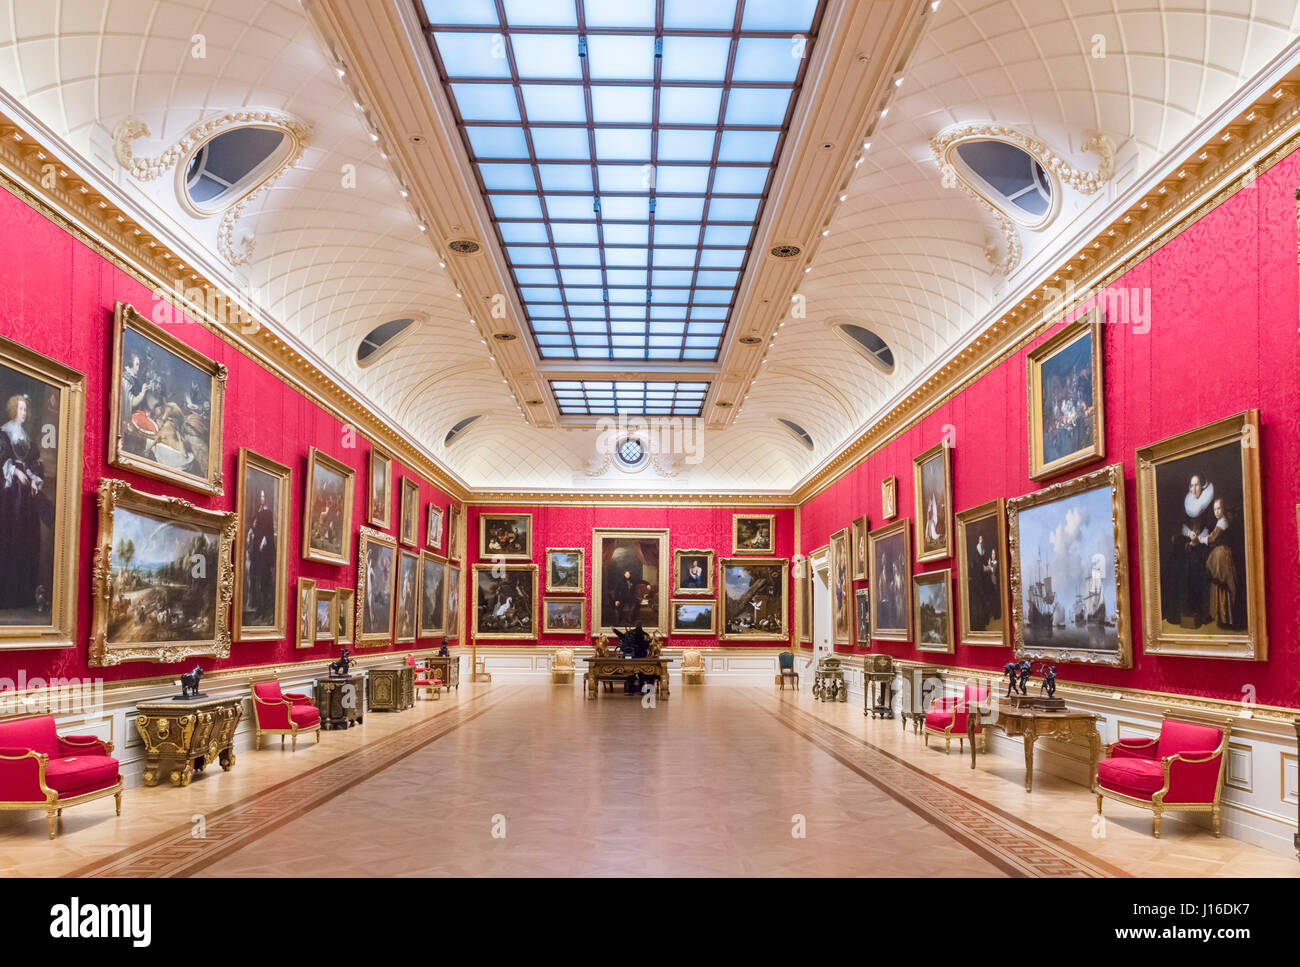 Gallery in the Wallace Collection, London, England, UK - Stock Image